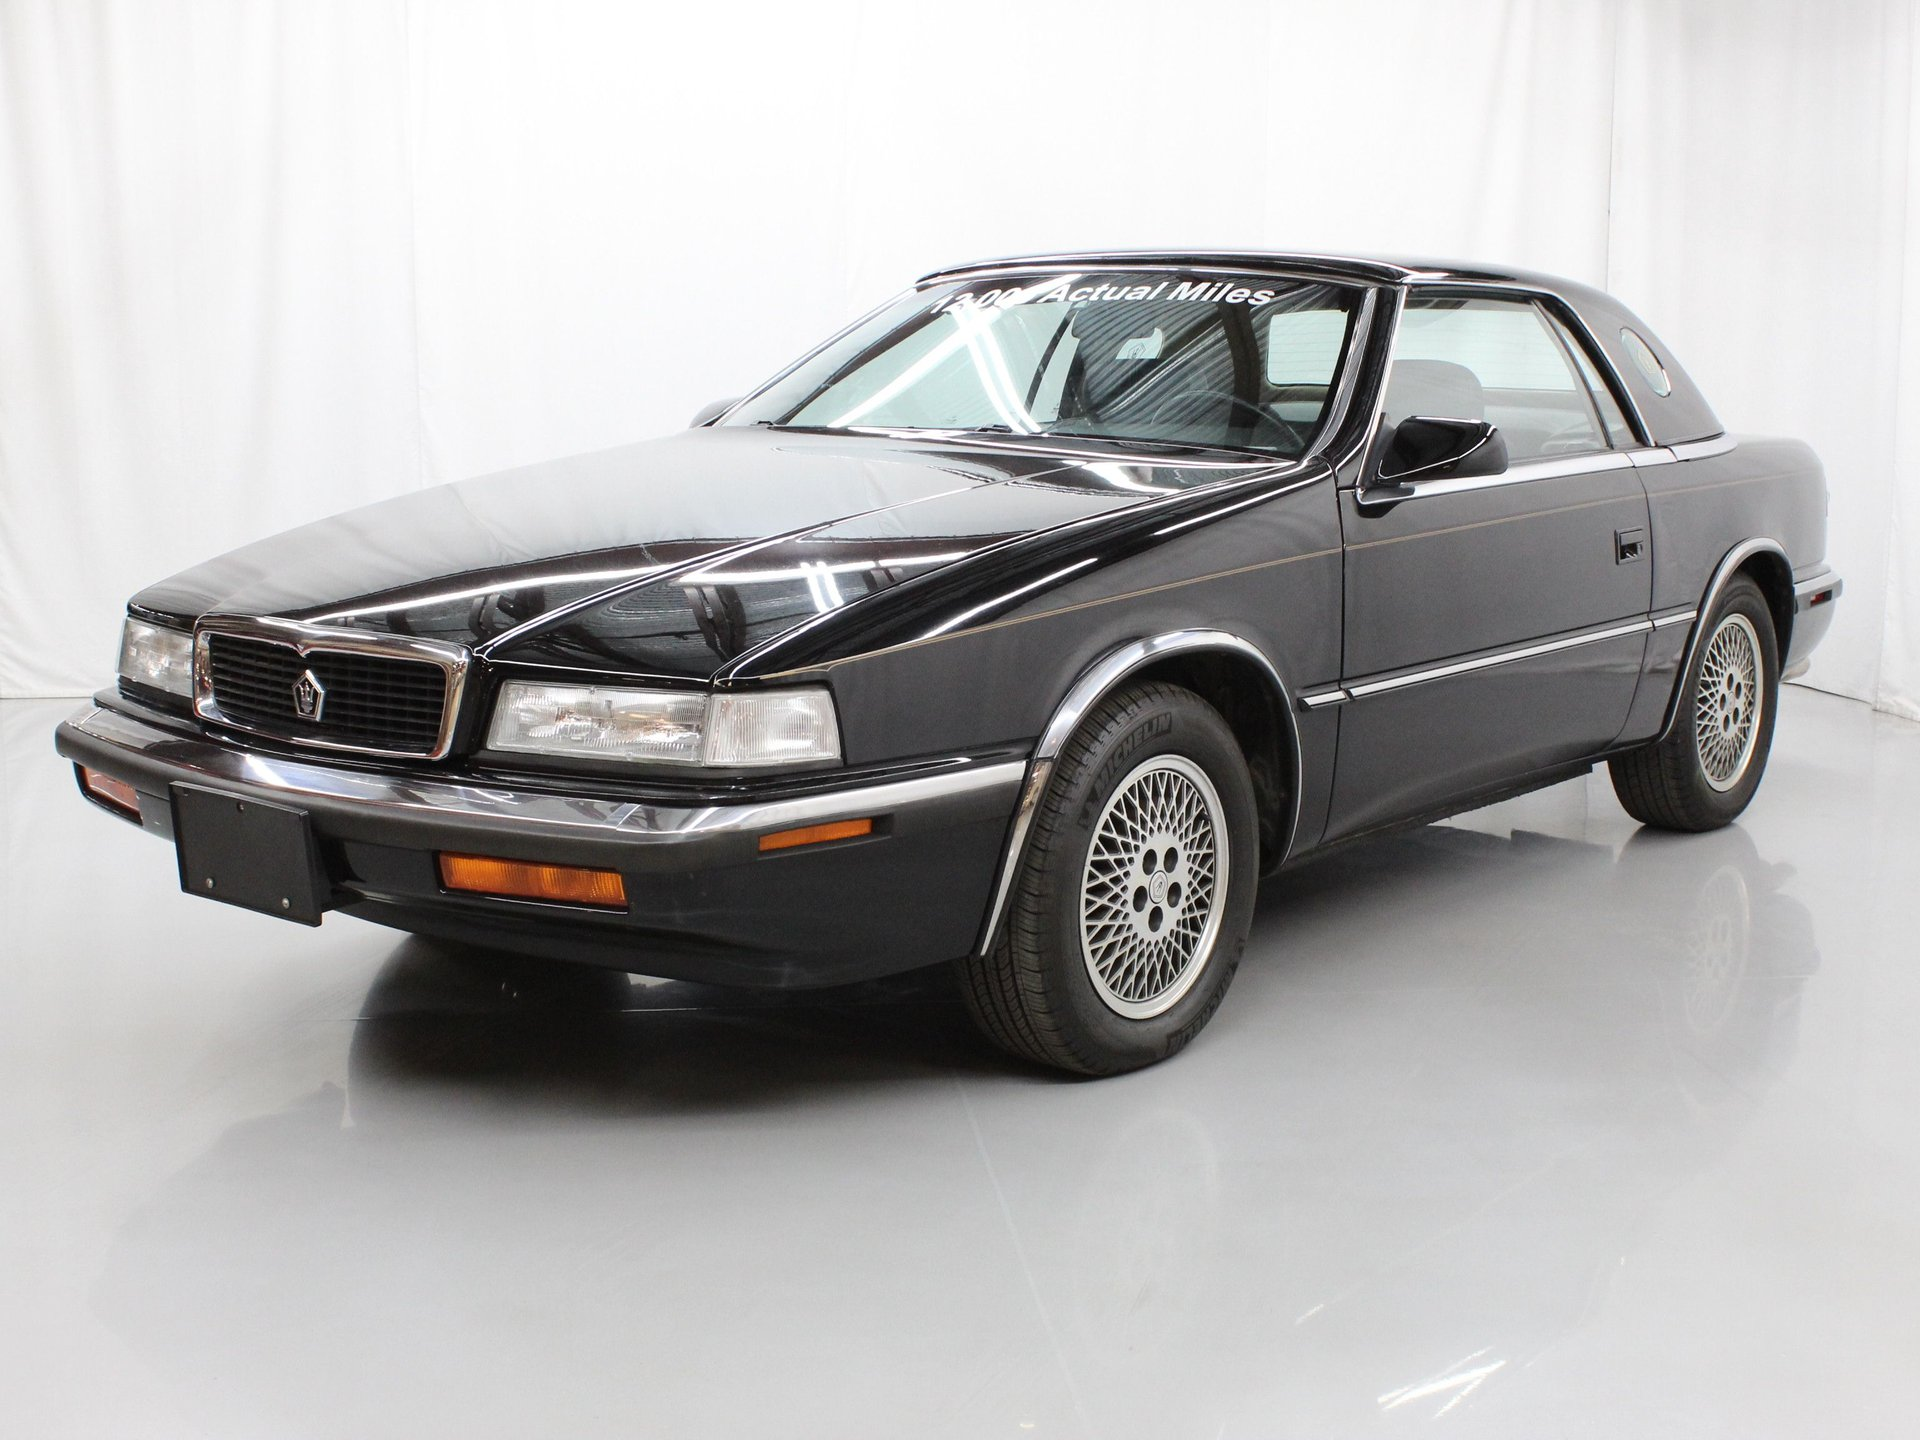 1991 Chrysler TC Maserati